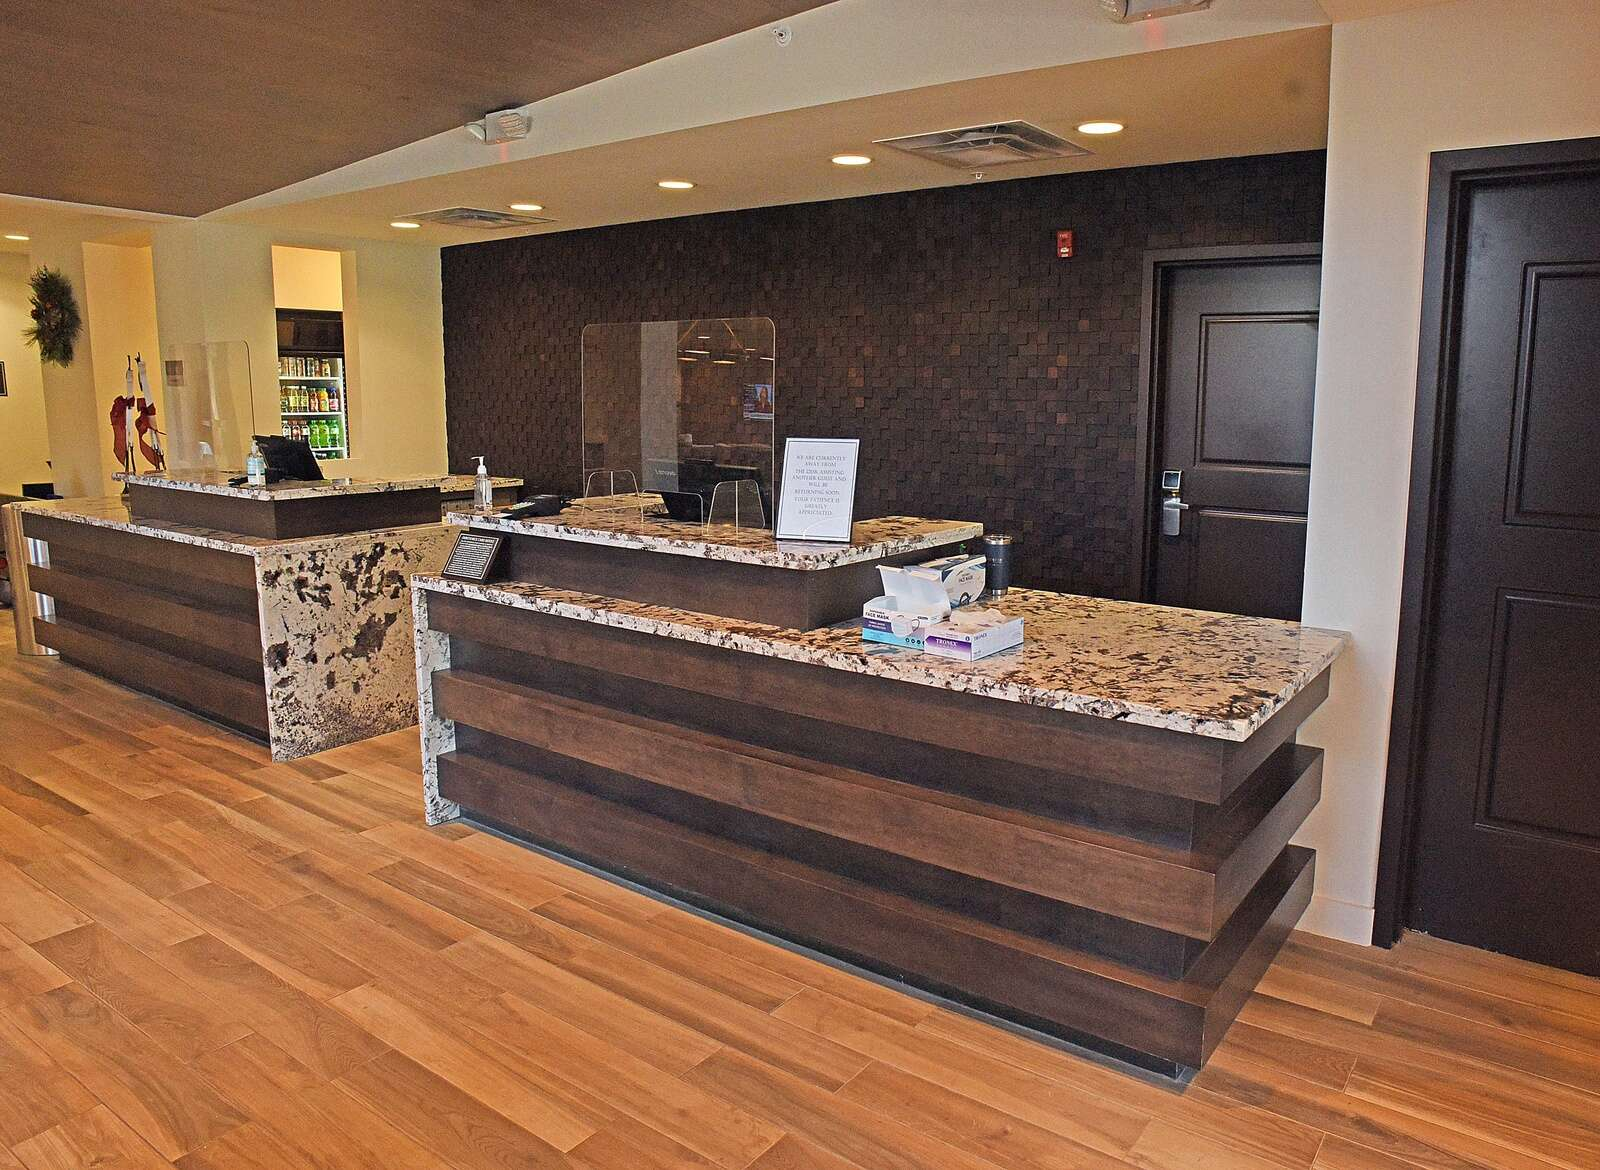 The front desk of the new Residence Inn by Marriott is welcoming and elegant. (Photo by John F. Russell)